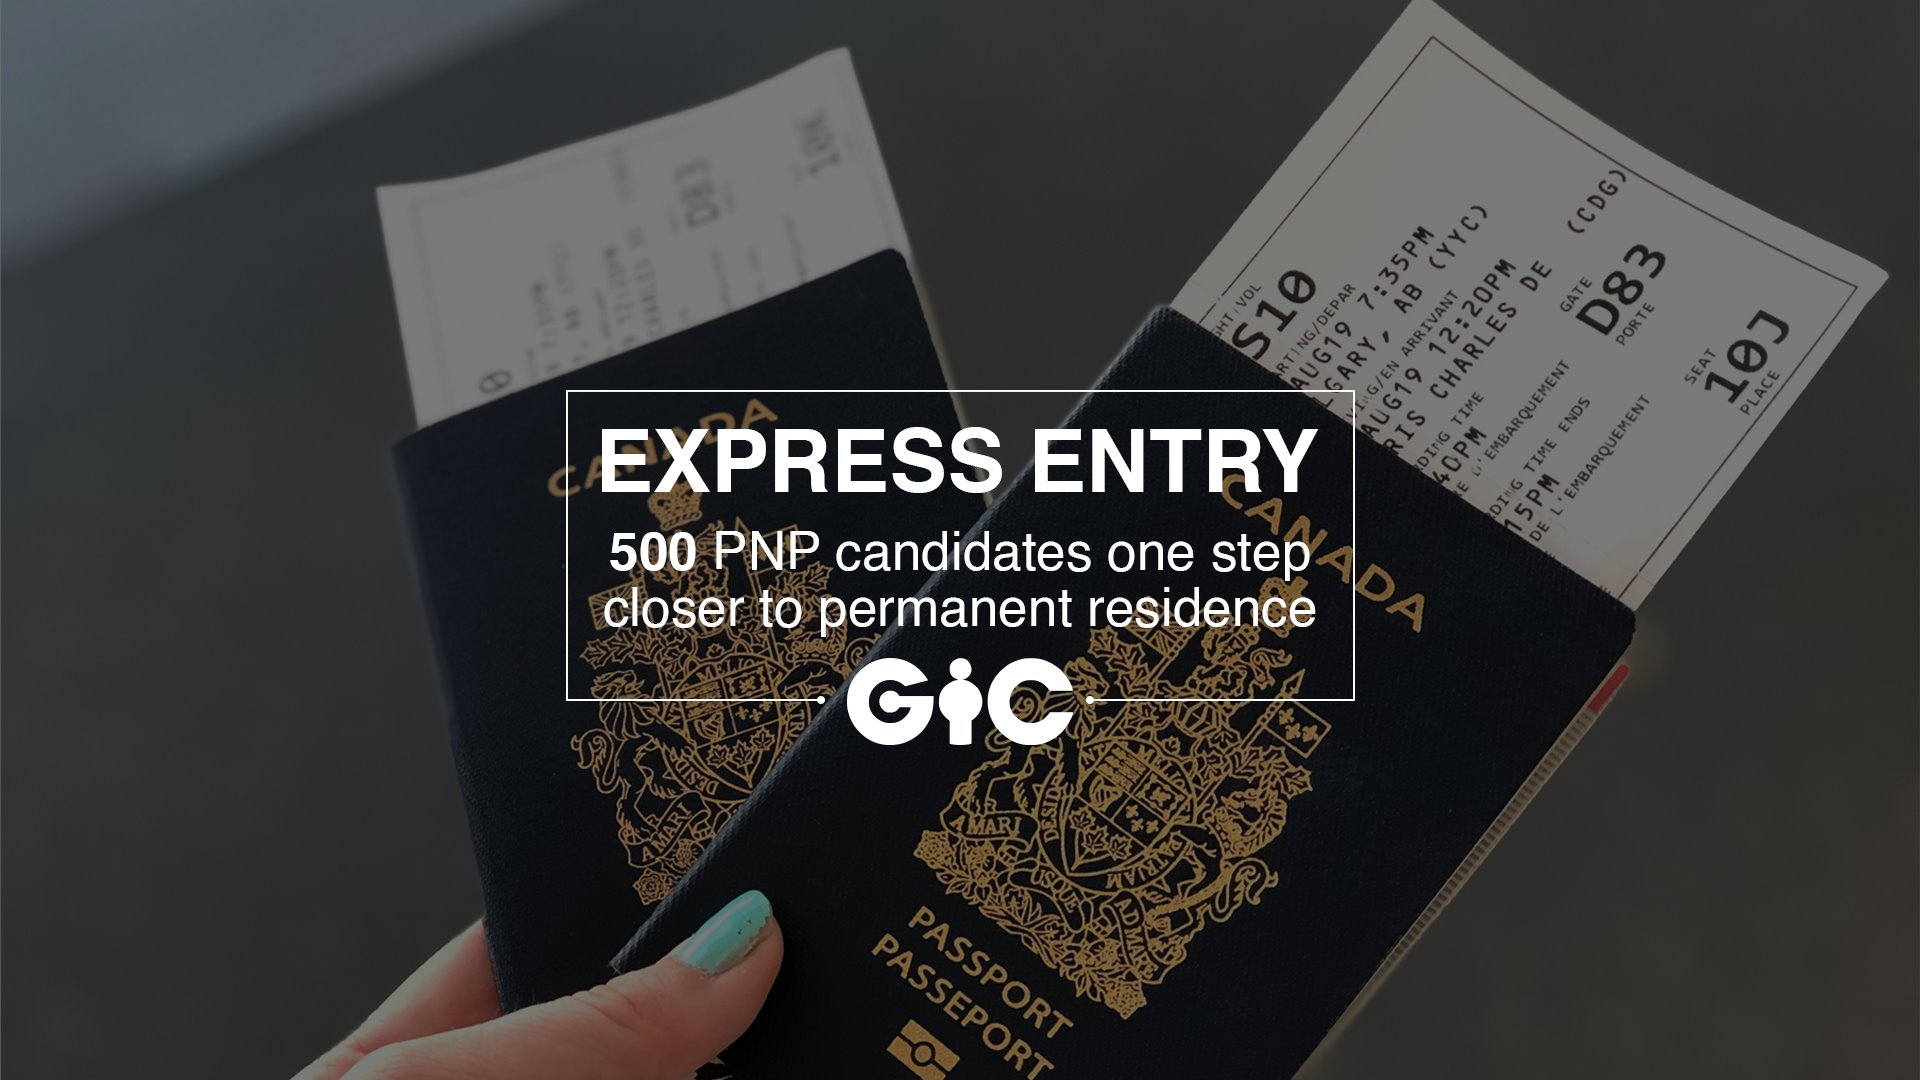 Express Entry 500 PNP candidates one step closer to permanent residence